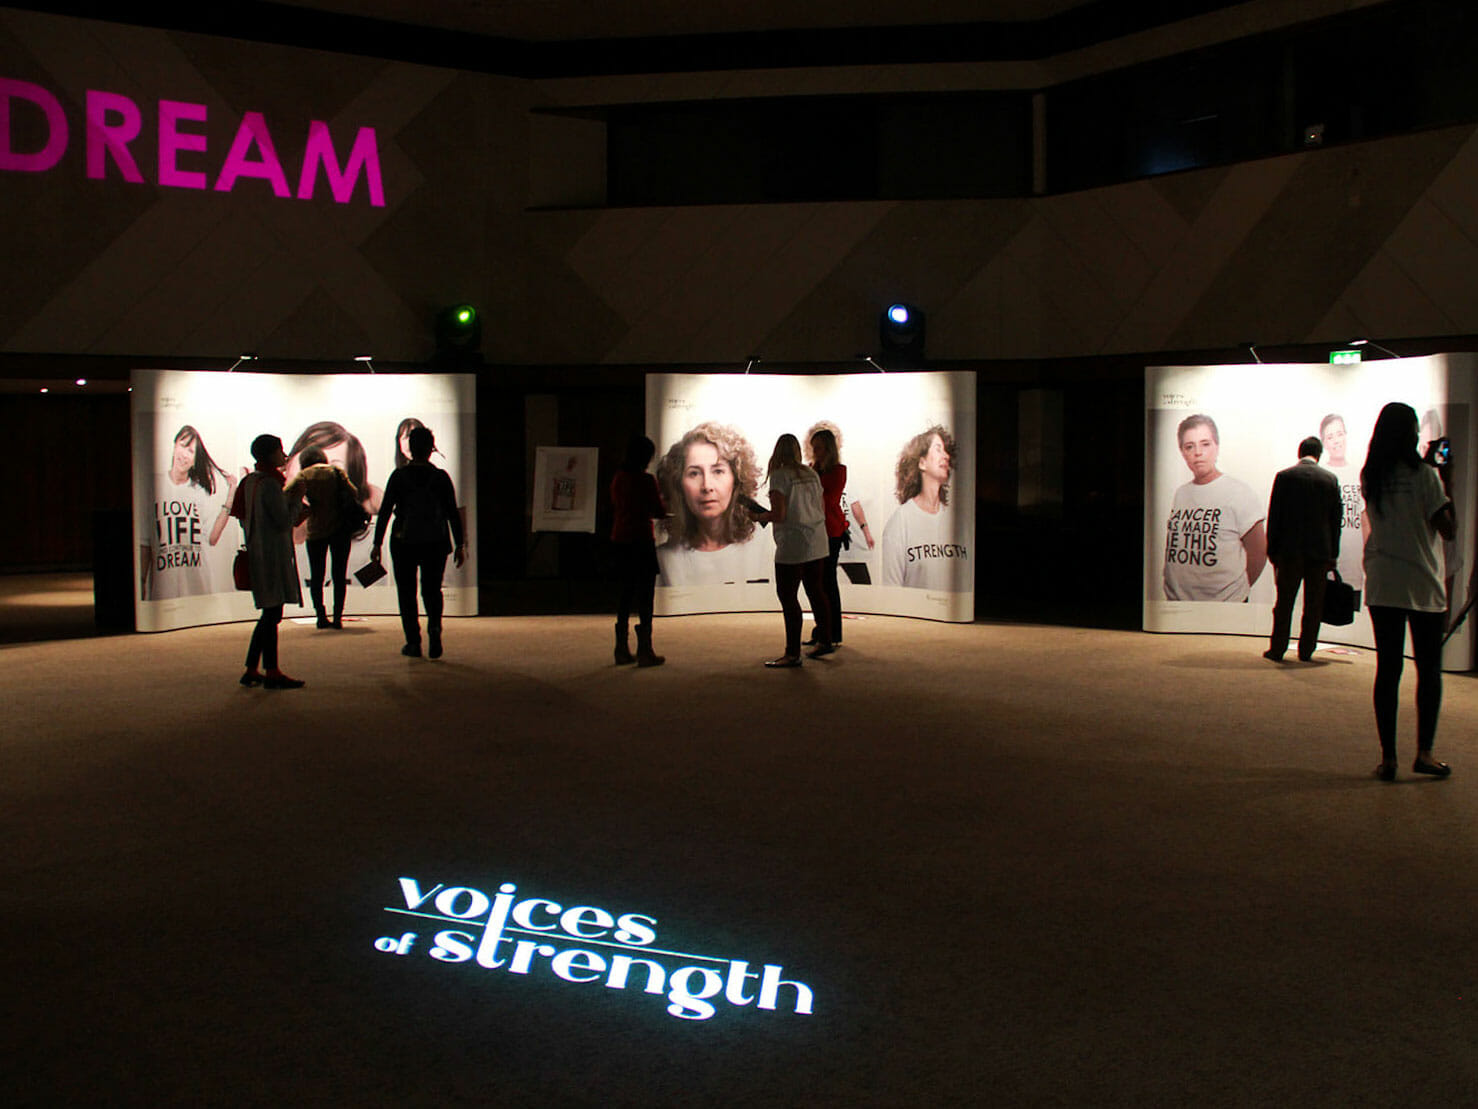 HERE-&-NOW—VOICES-OF-STRENGHT